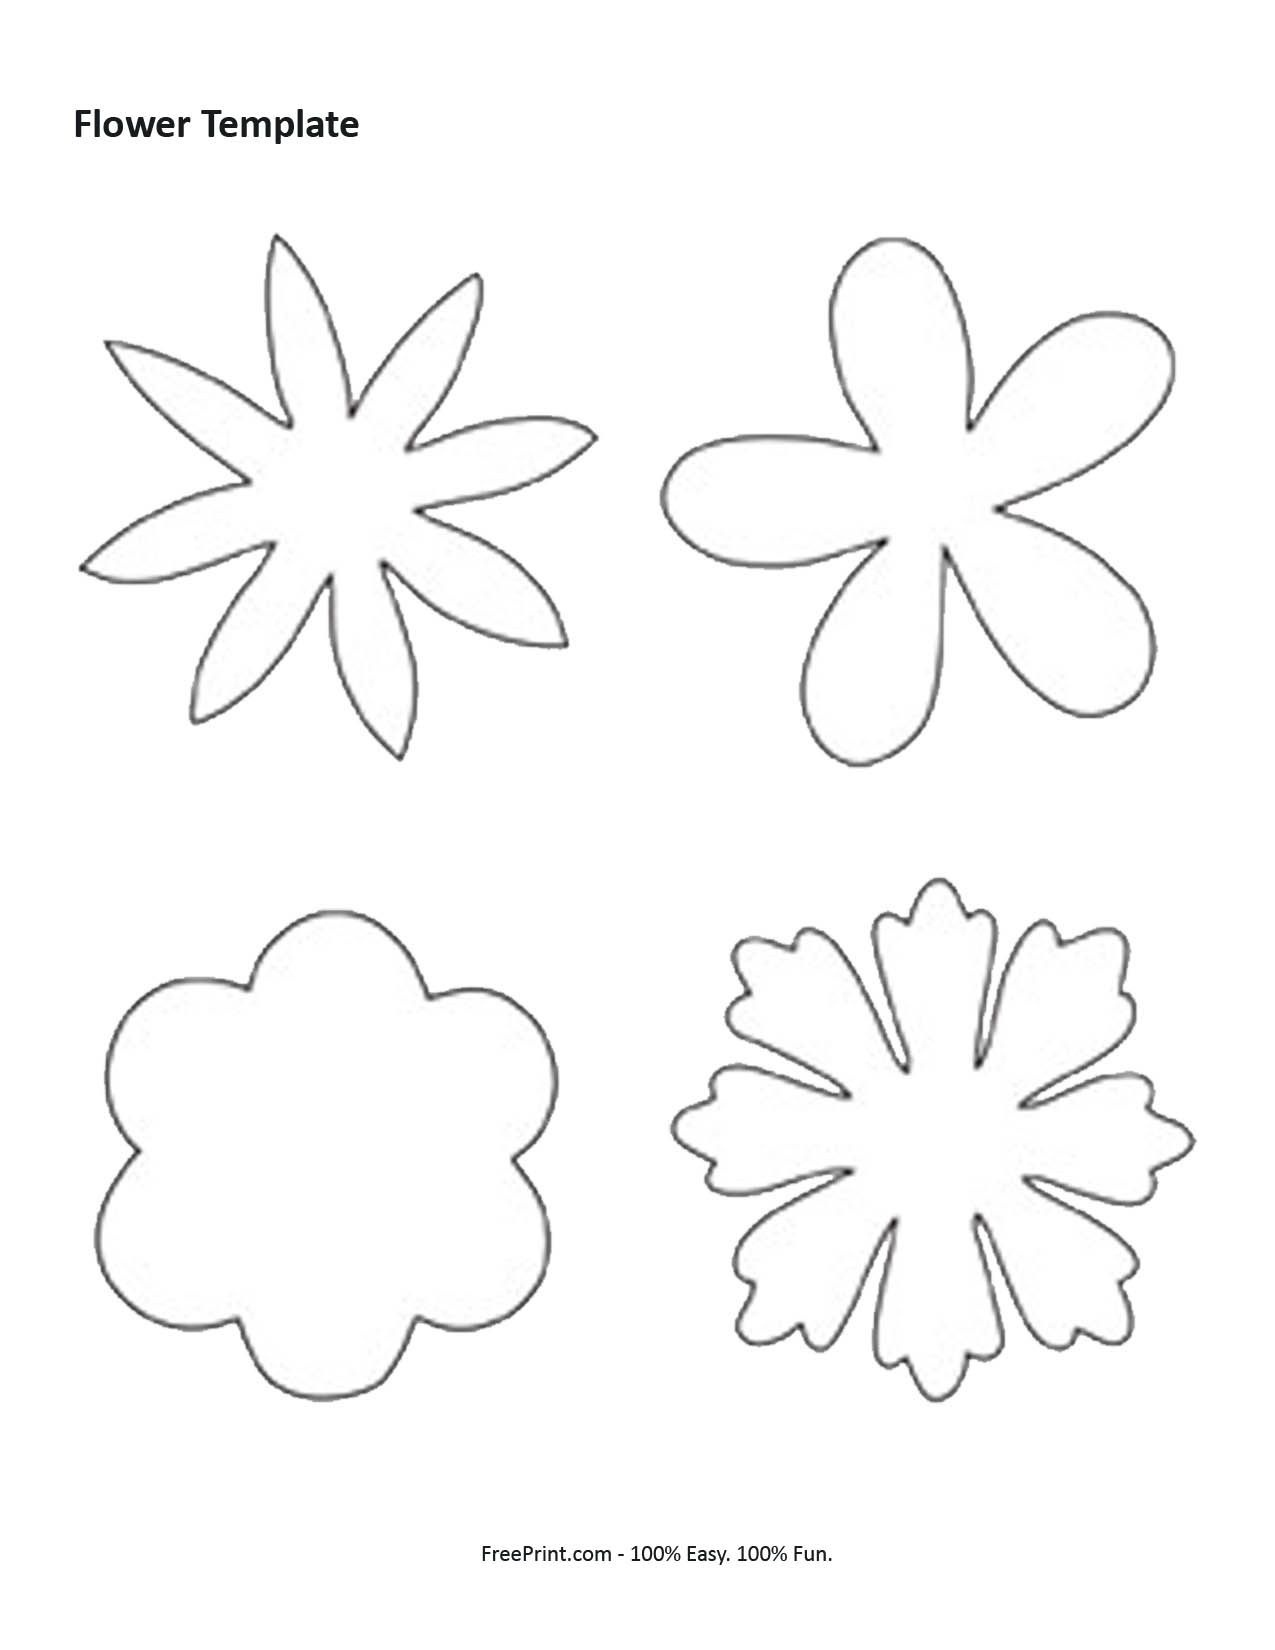 7 Best Images Of Shape Flower Printable Templates - Free Printable - Free Printable Flower Template